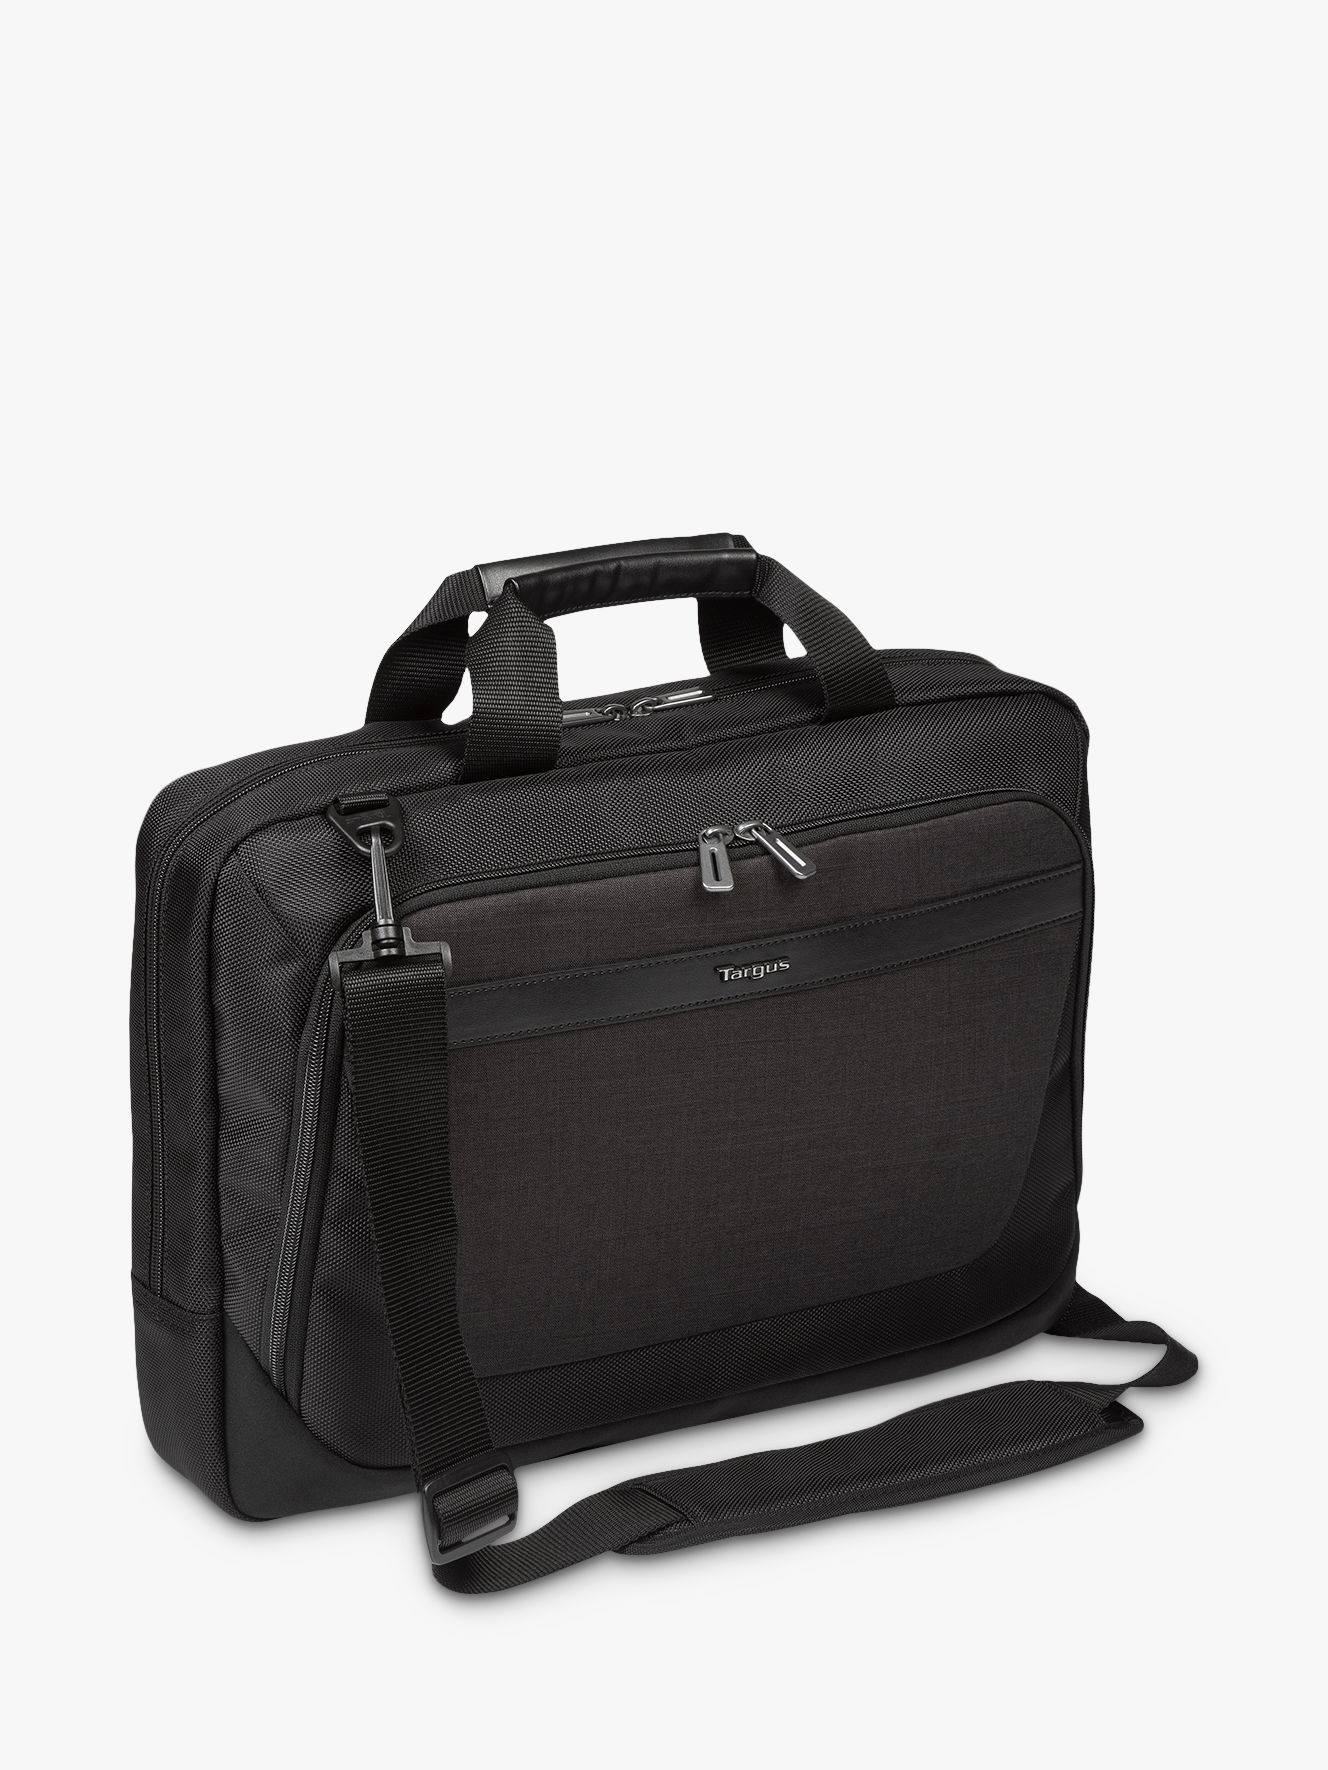 Targus Targus CitySmart Slimline Topload Case for Laptops up to 15.6, Black